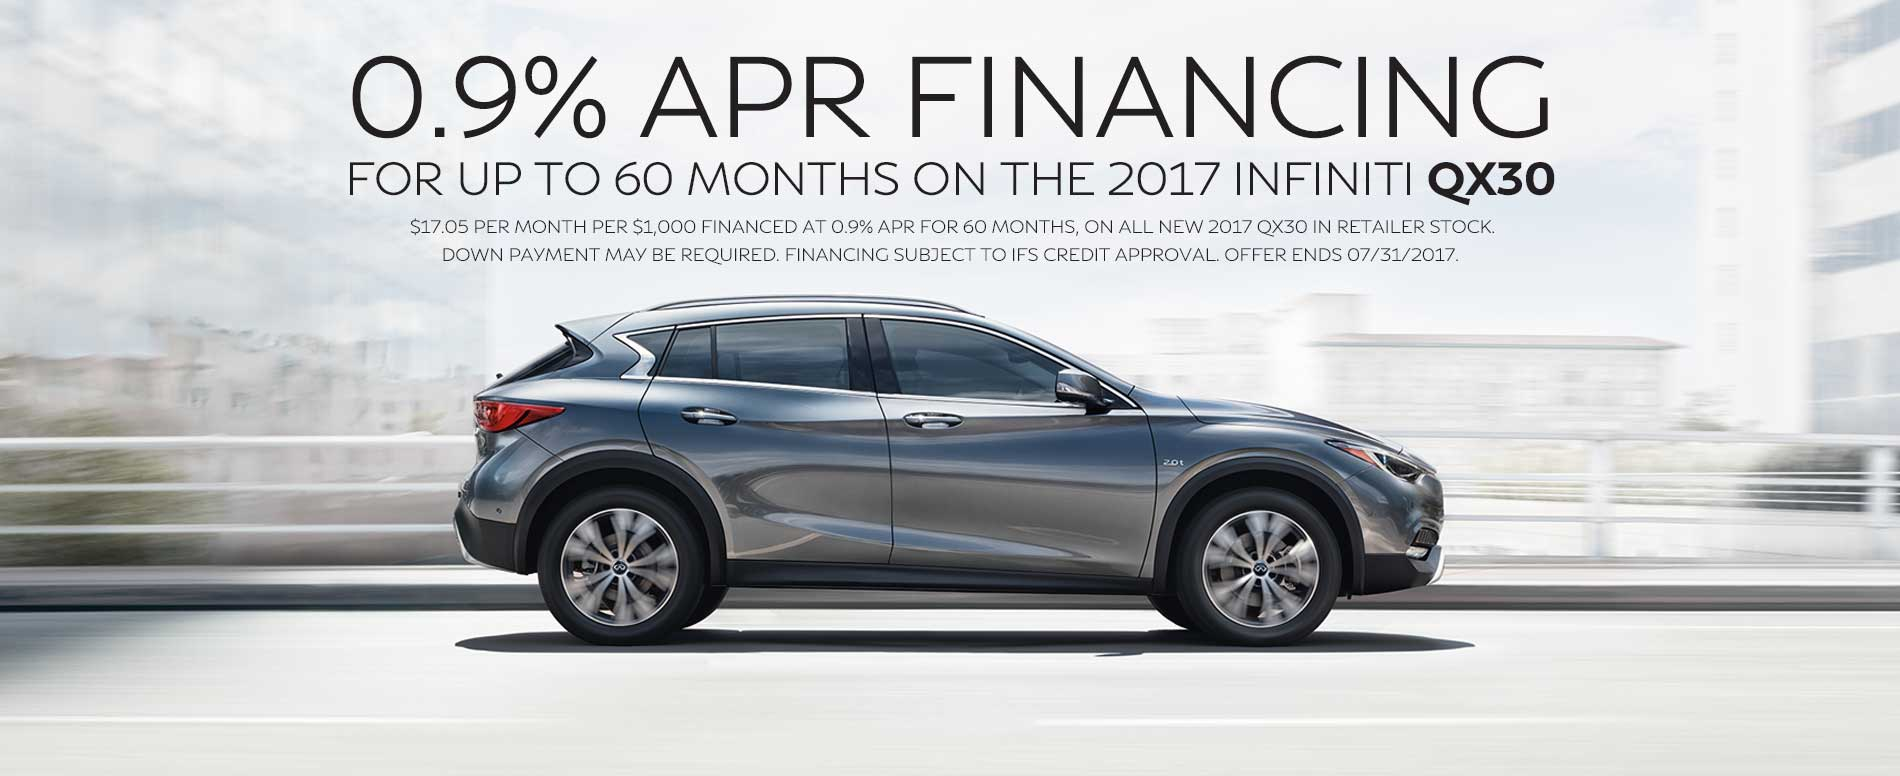 0.9% APR Financing for for up to 60 months on 2017 QX30.